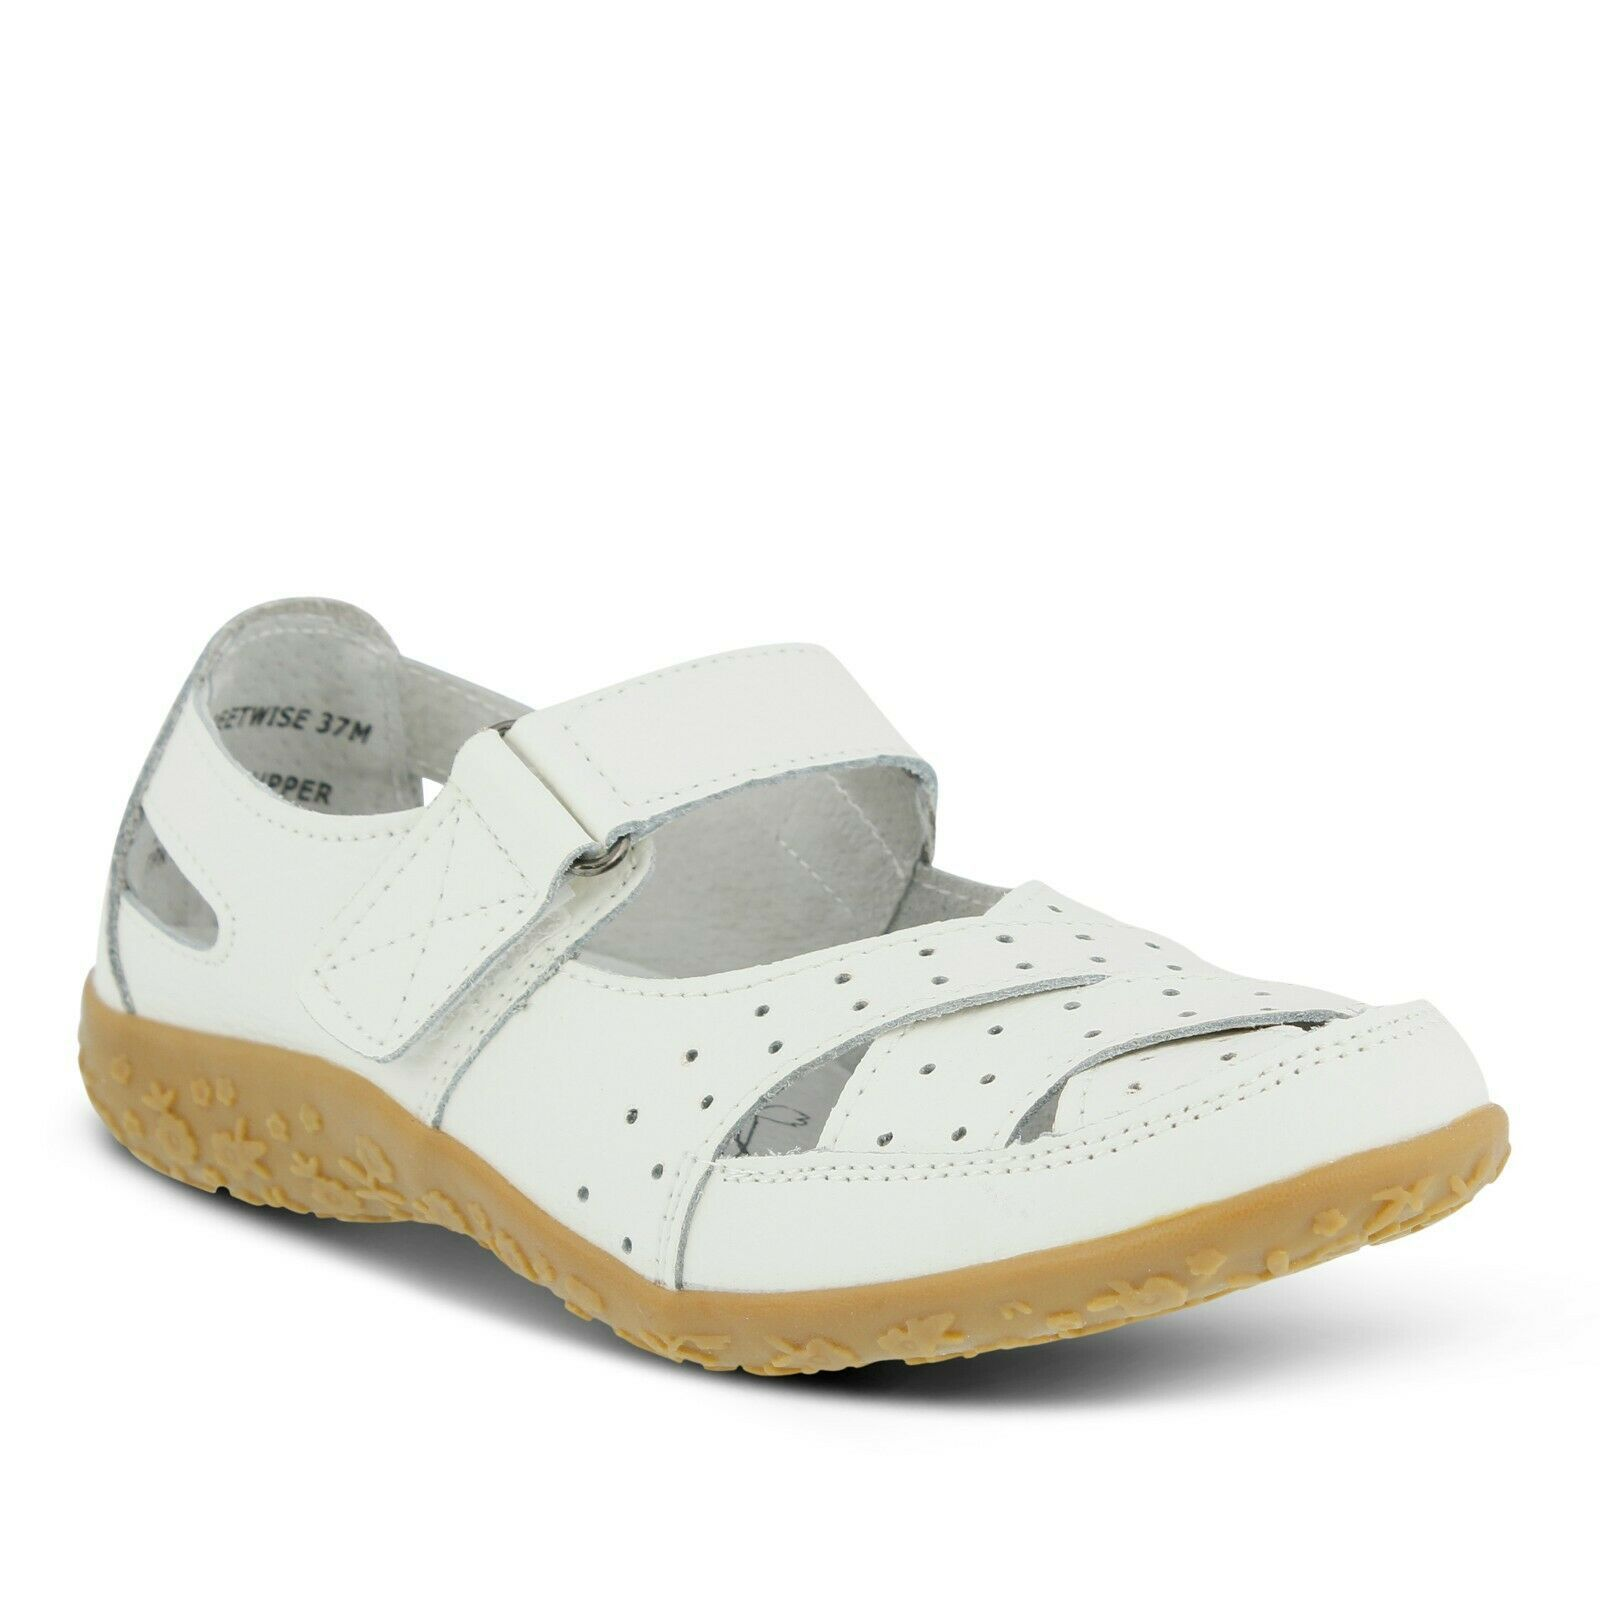 Spring Step Streetwise Mary-jane Women's Sandal 40 / US 9 - $44.95